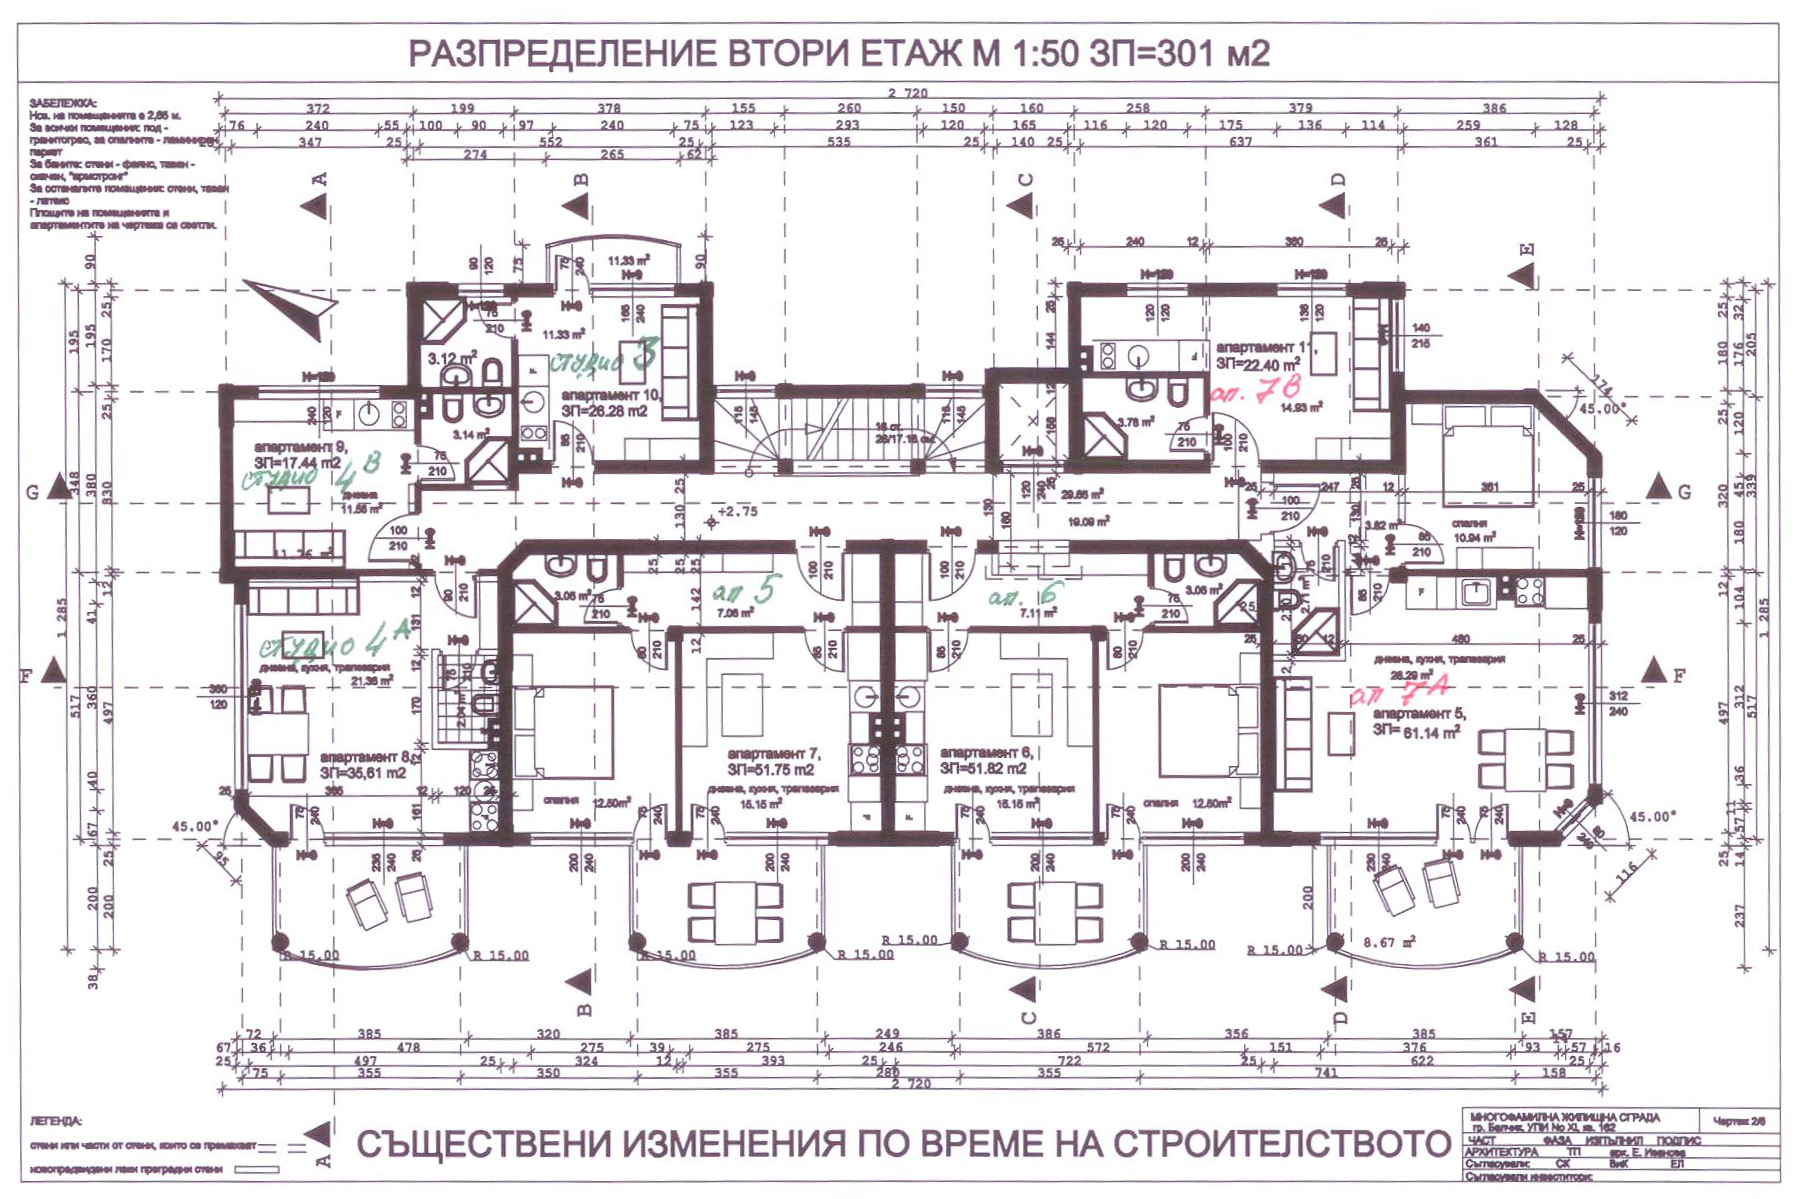 Architect floor plans gallery for gt architectural drawings floor plans